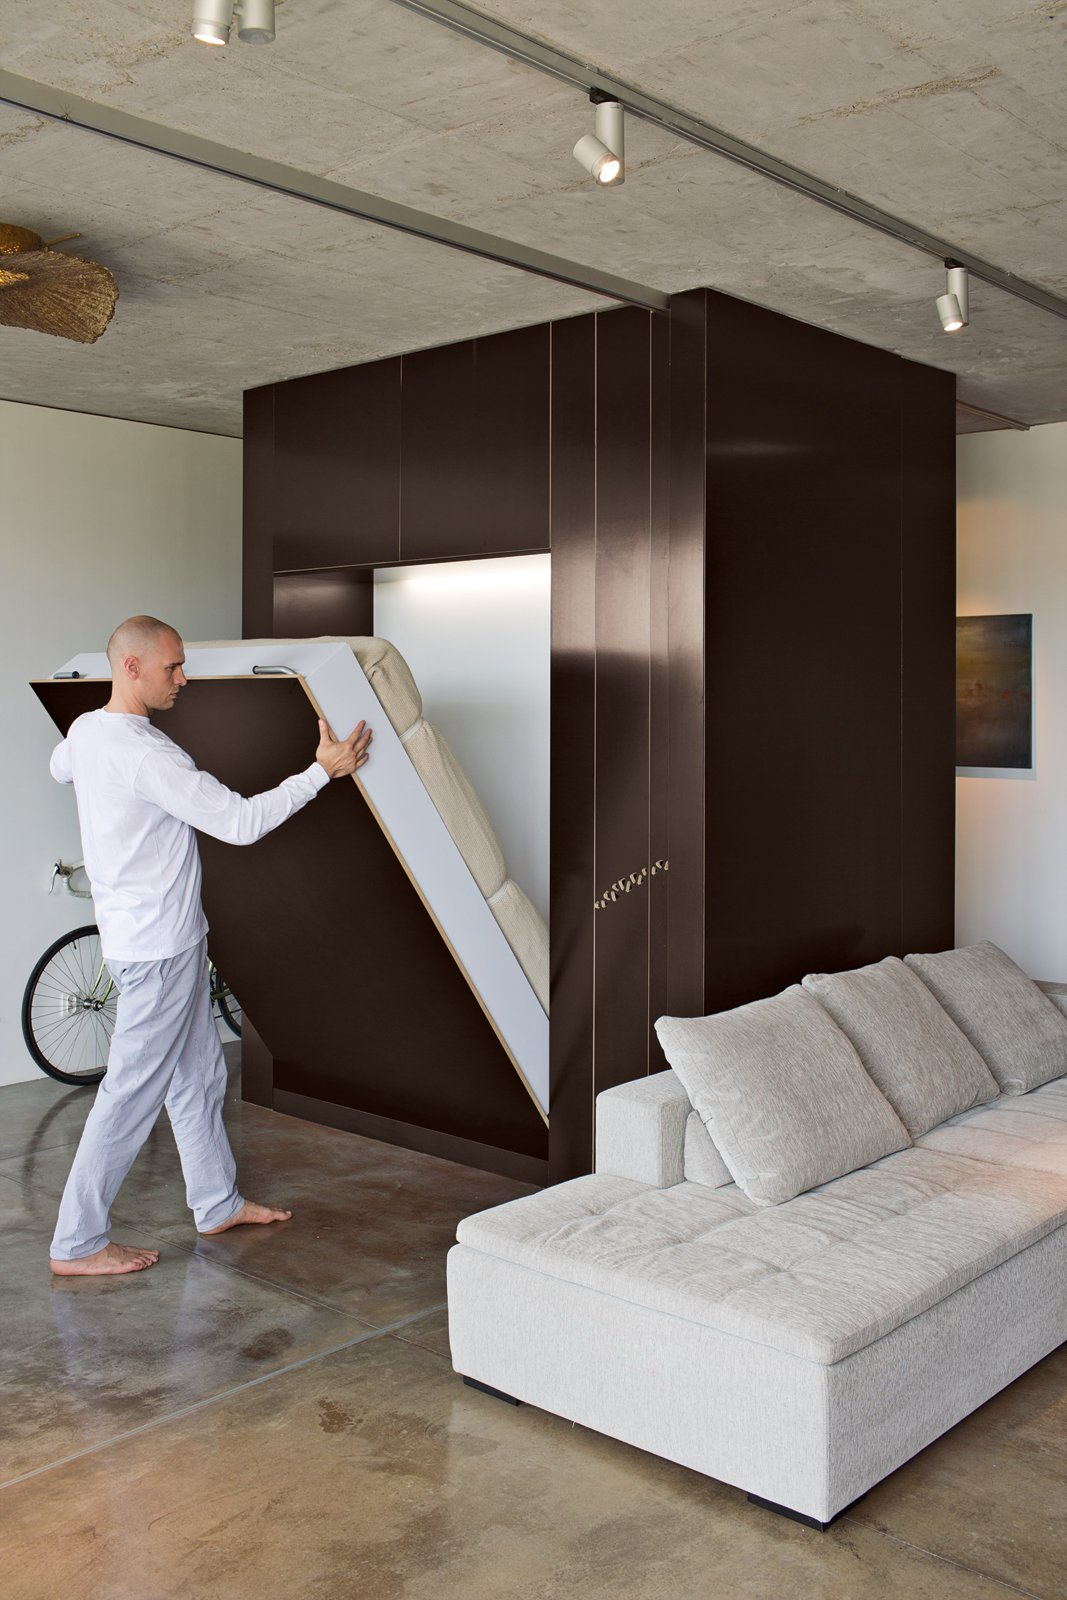 By lowering the custom Murphy bed and rolling a sliding plywood door, Novak-Zemplinski creates an insta-guestroom. Photo by Andreas Meichsner. Tagged: Bedroom and Bed.  Bedrooms by Dwell from Warsaw Loft with Multifunctional Furniture